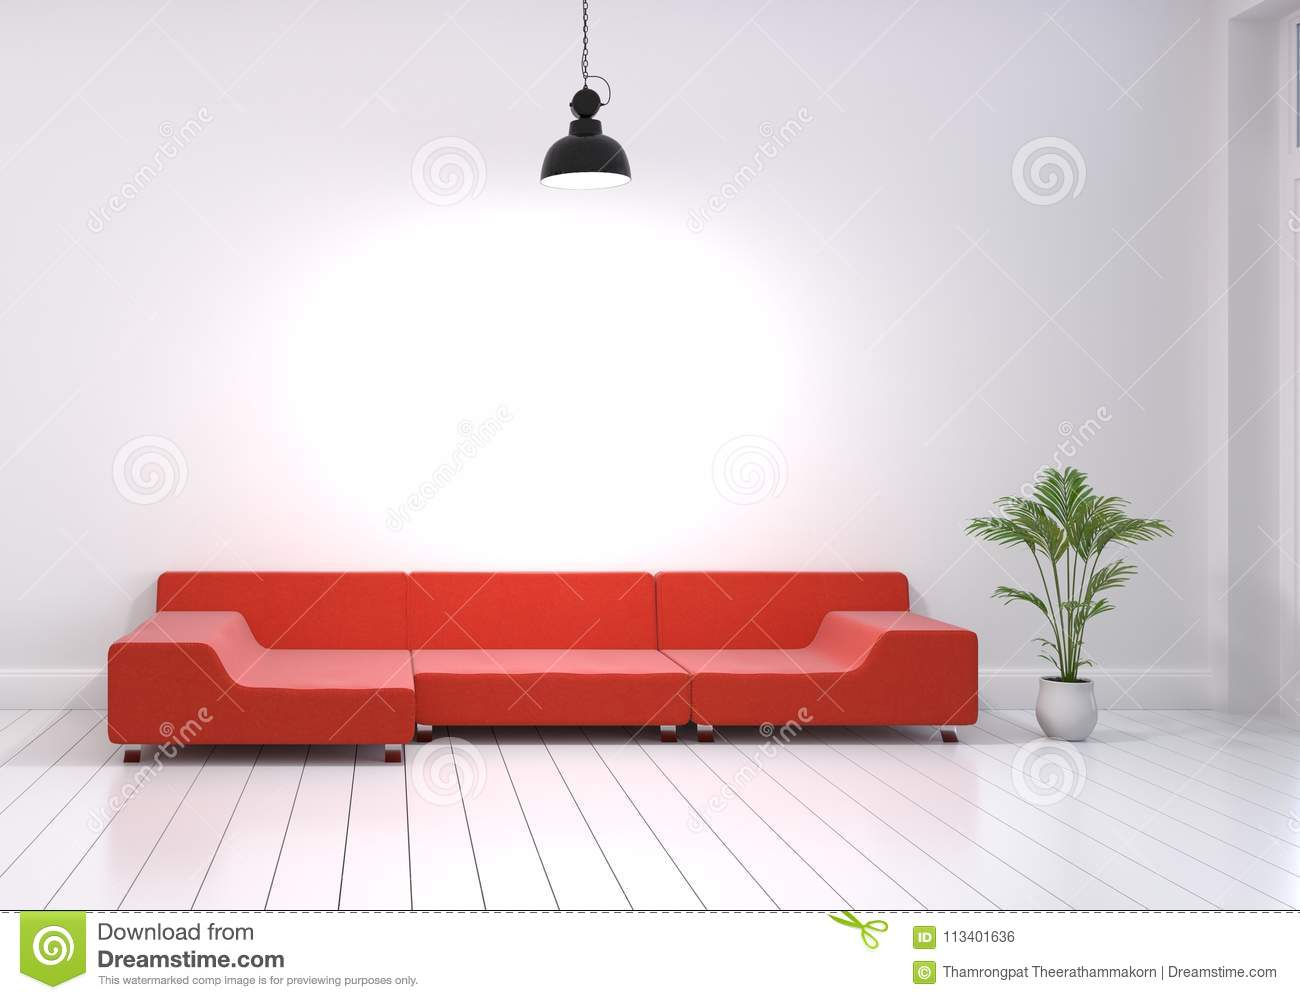 Modern Interior Design Of Living Room With Red Sofa And Plant Po Stock Illustration Illustration Of Contemporary Lamp 113401636